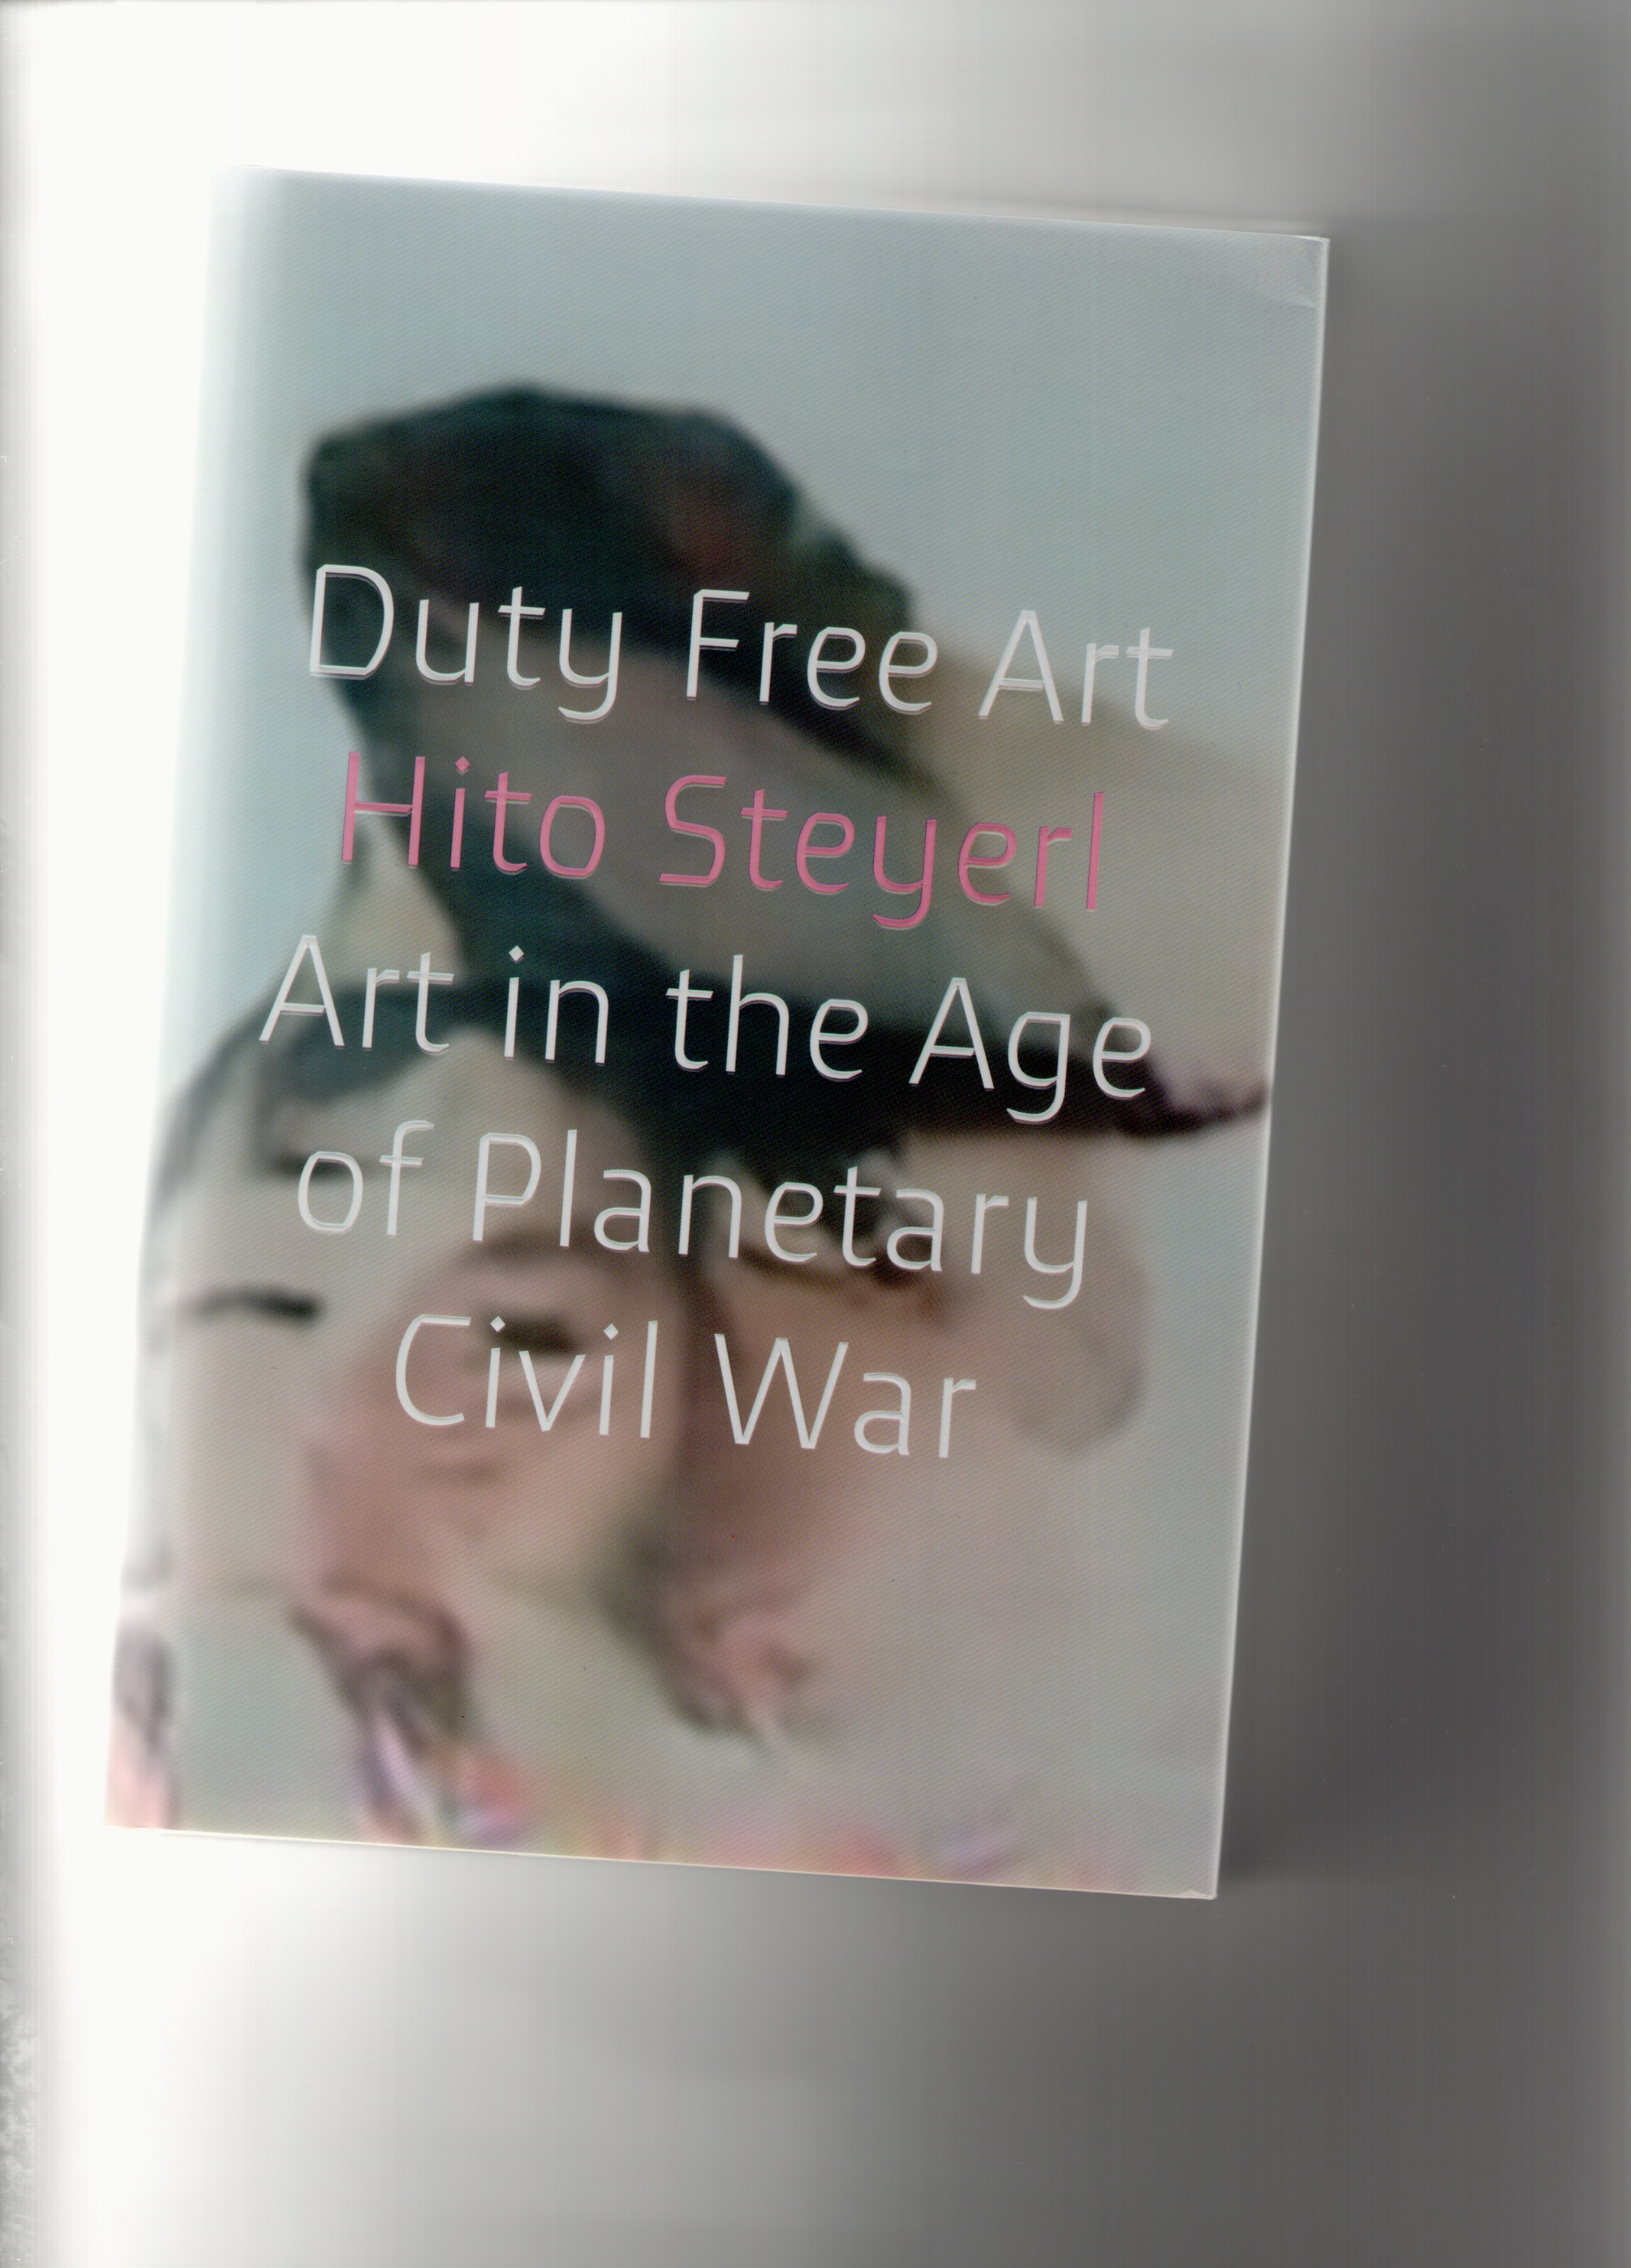 STEYERL, Hito - Duty Free Art. Art in the Age of Planetary Civil War